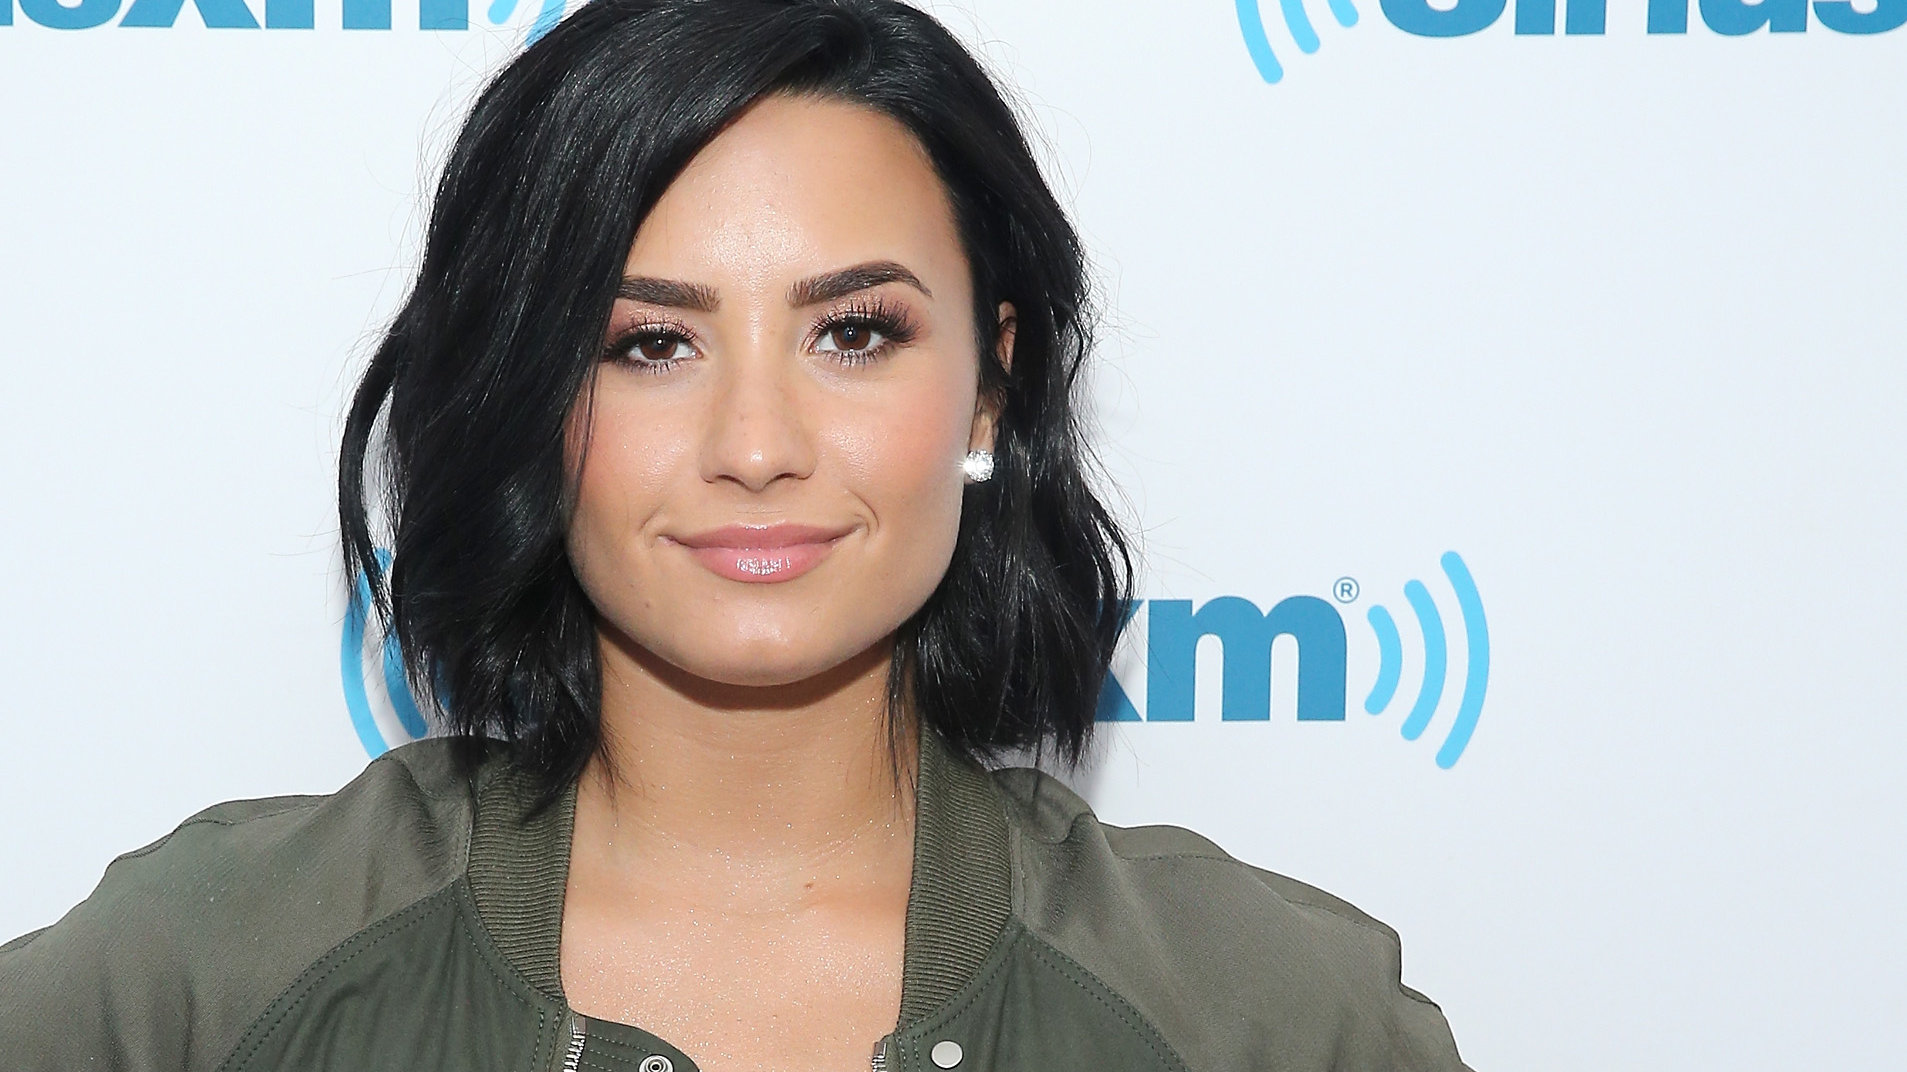 Demi Lovato's Makeup-Free Selfie Embraces Her Freckles